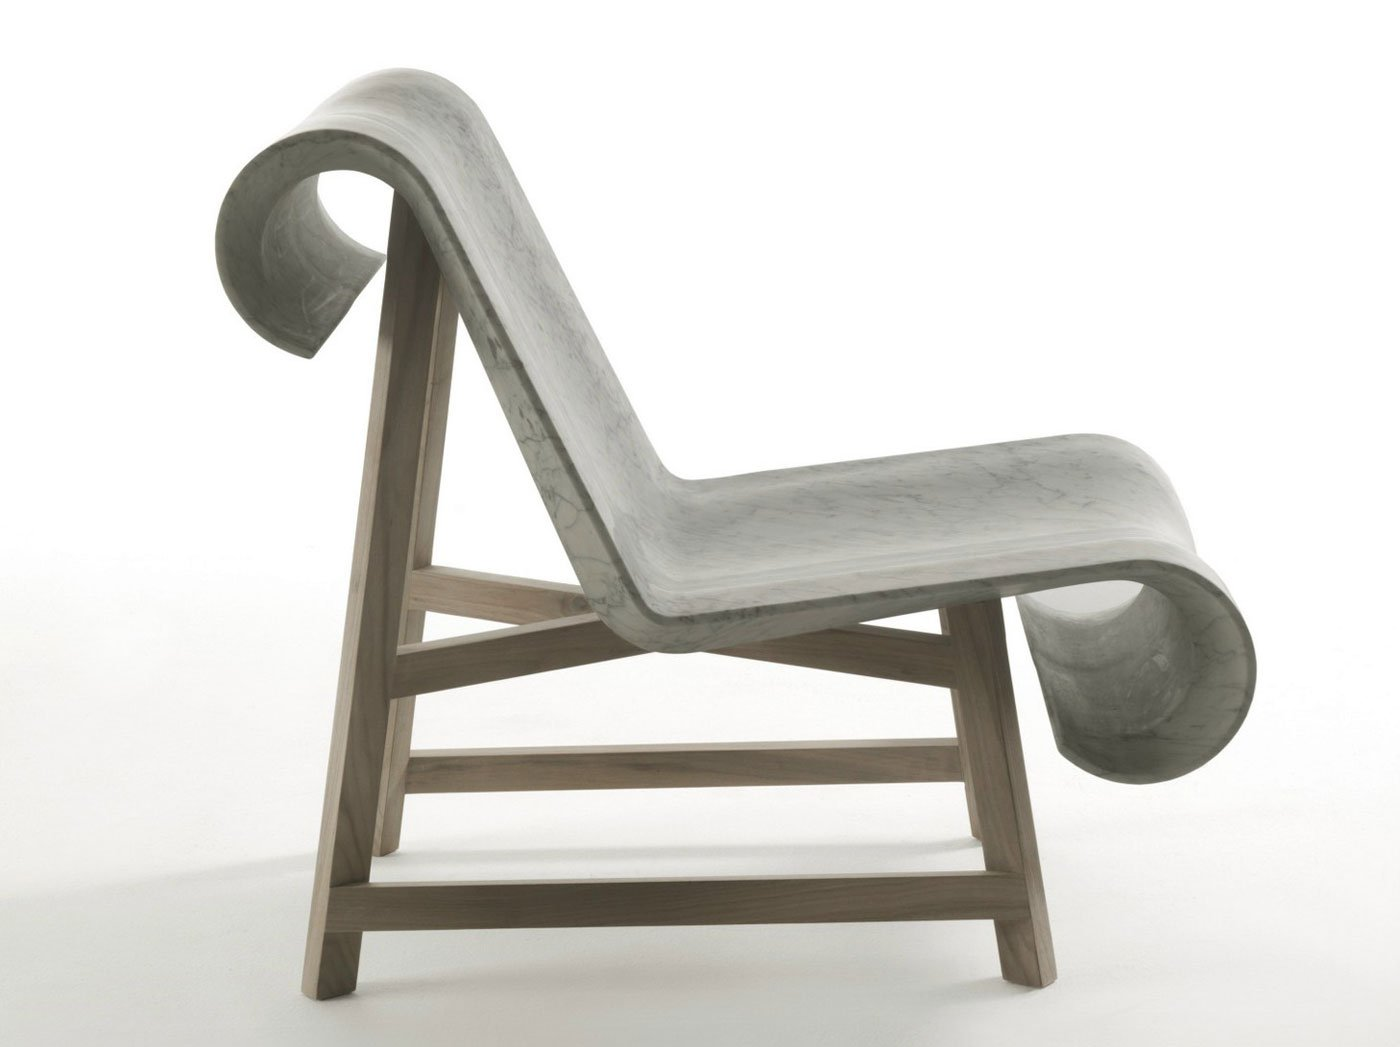 Modern Classic Chair Made of Marble and Wood